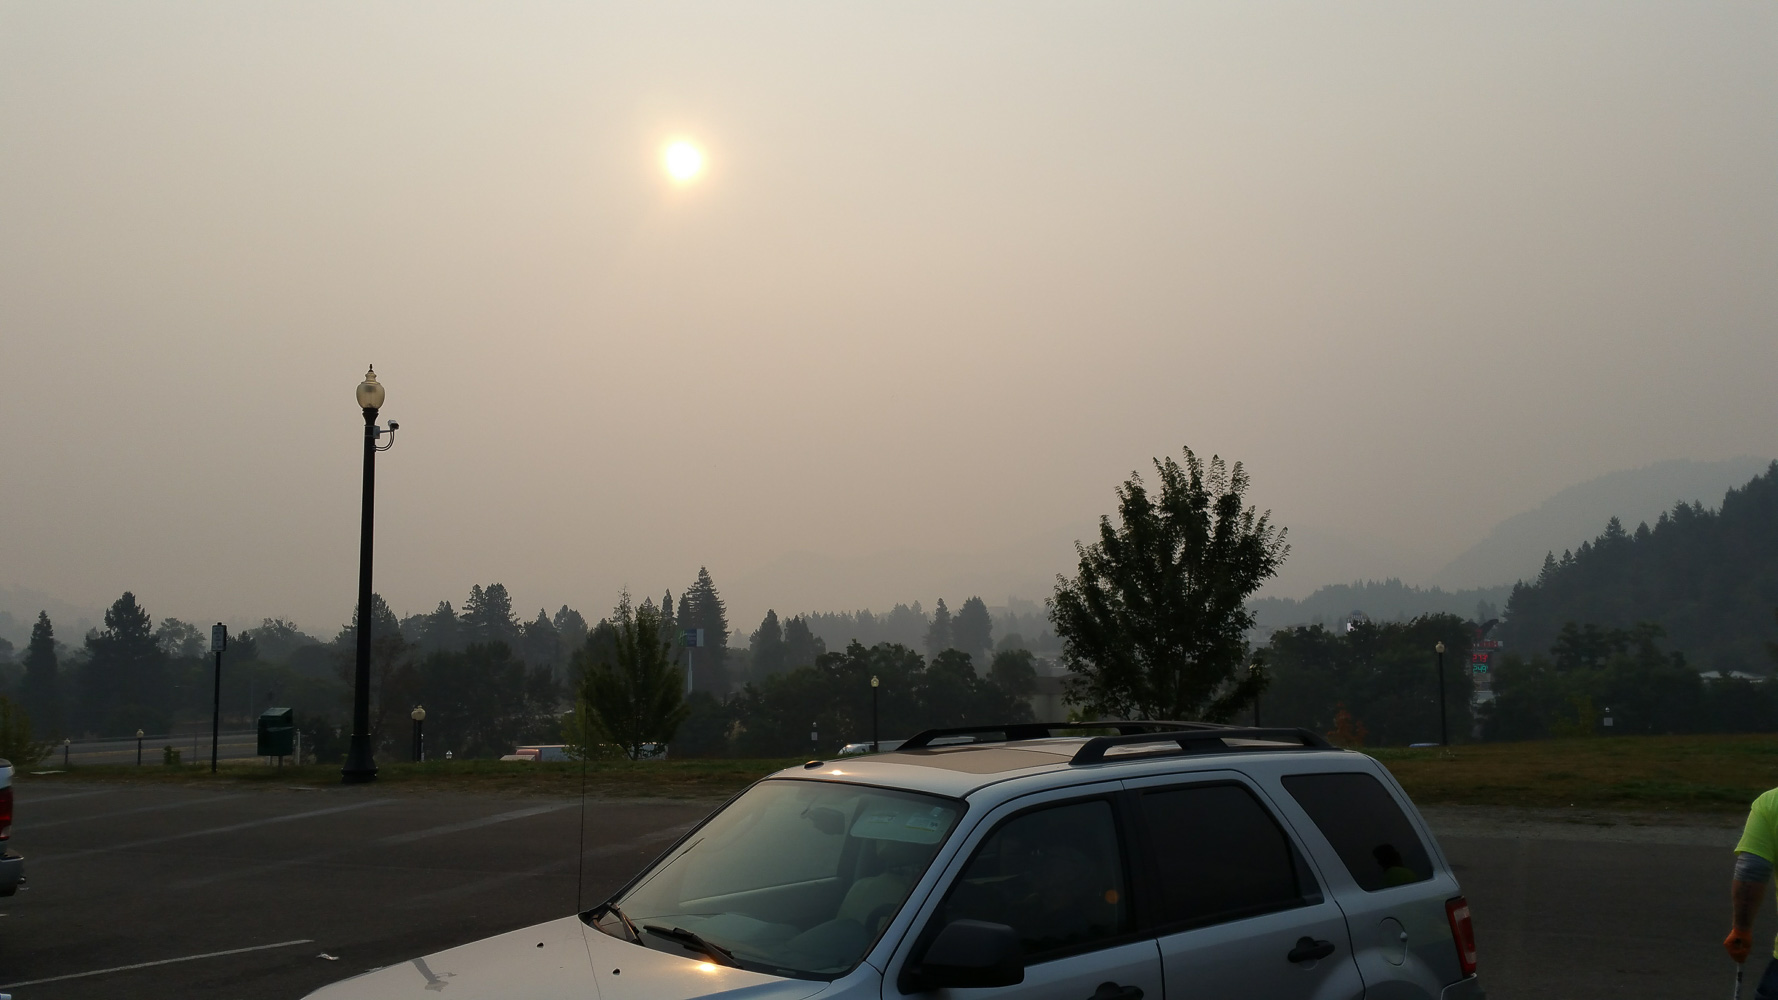 Late afternoon on the day of the eclipse the smoke came back. Both California and Oregon were having big wildfires that year